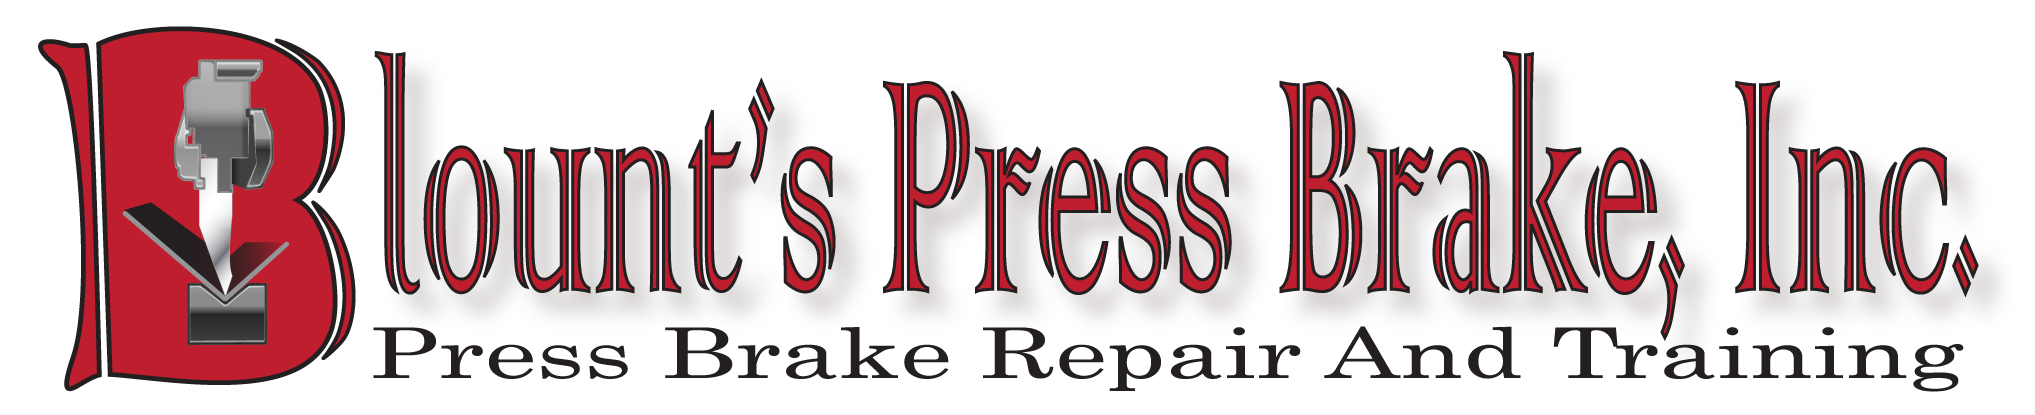 Blount's Press Brake, Inc. -  Repair & Training